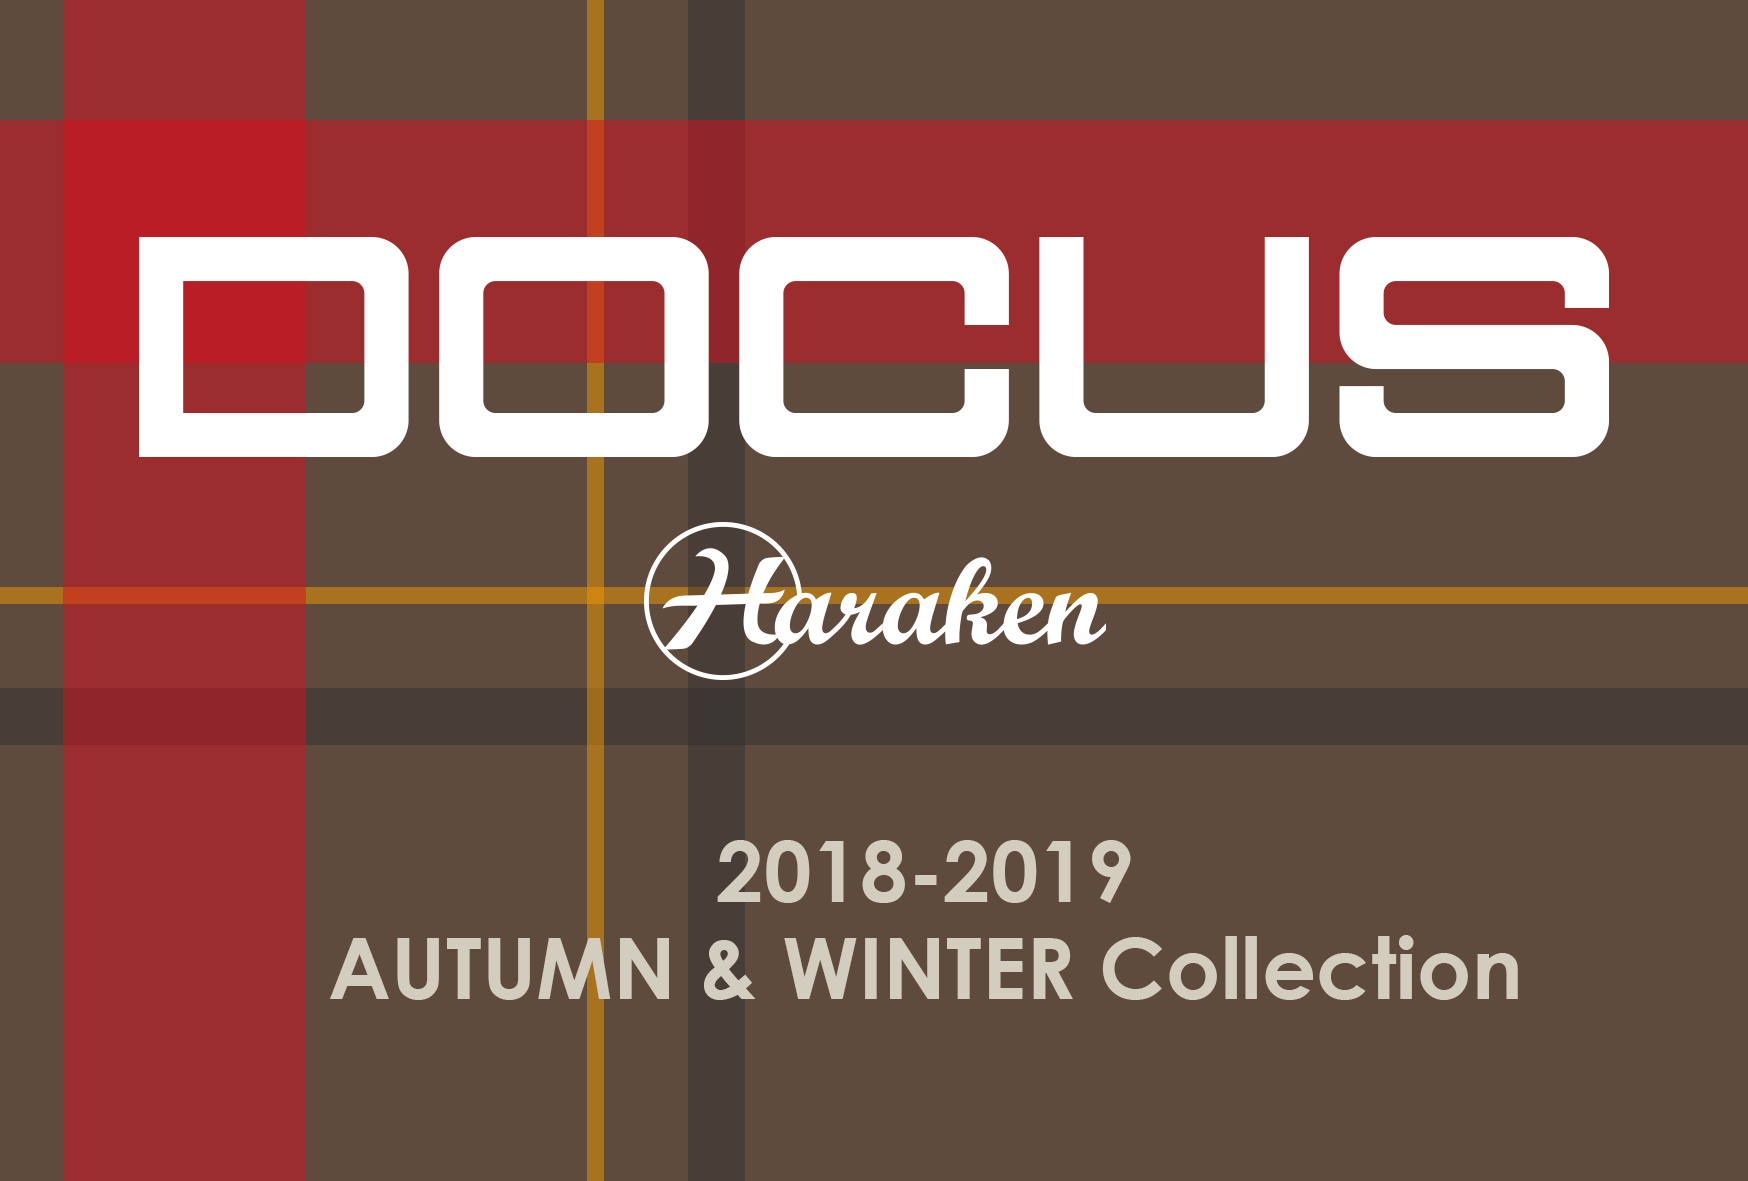 2018-2019 AUTUMN & WINTER Collection